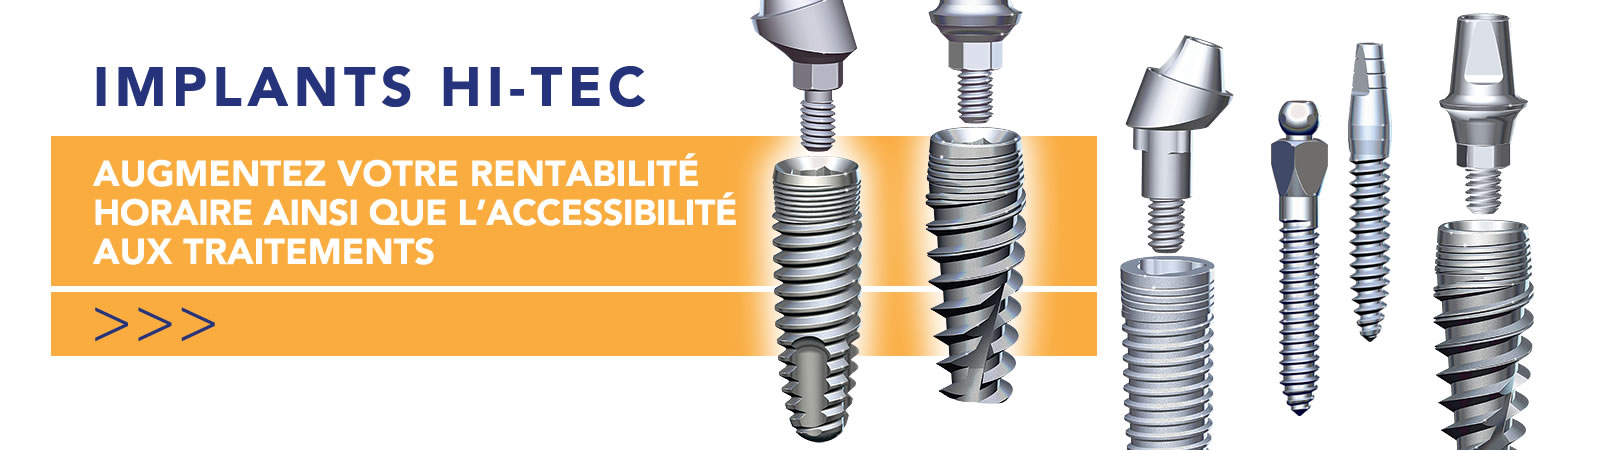 implants hi-tec